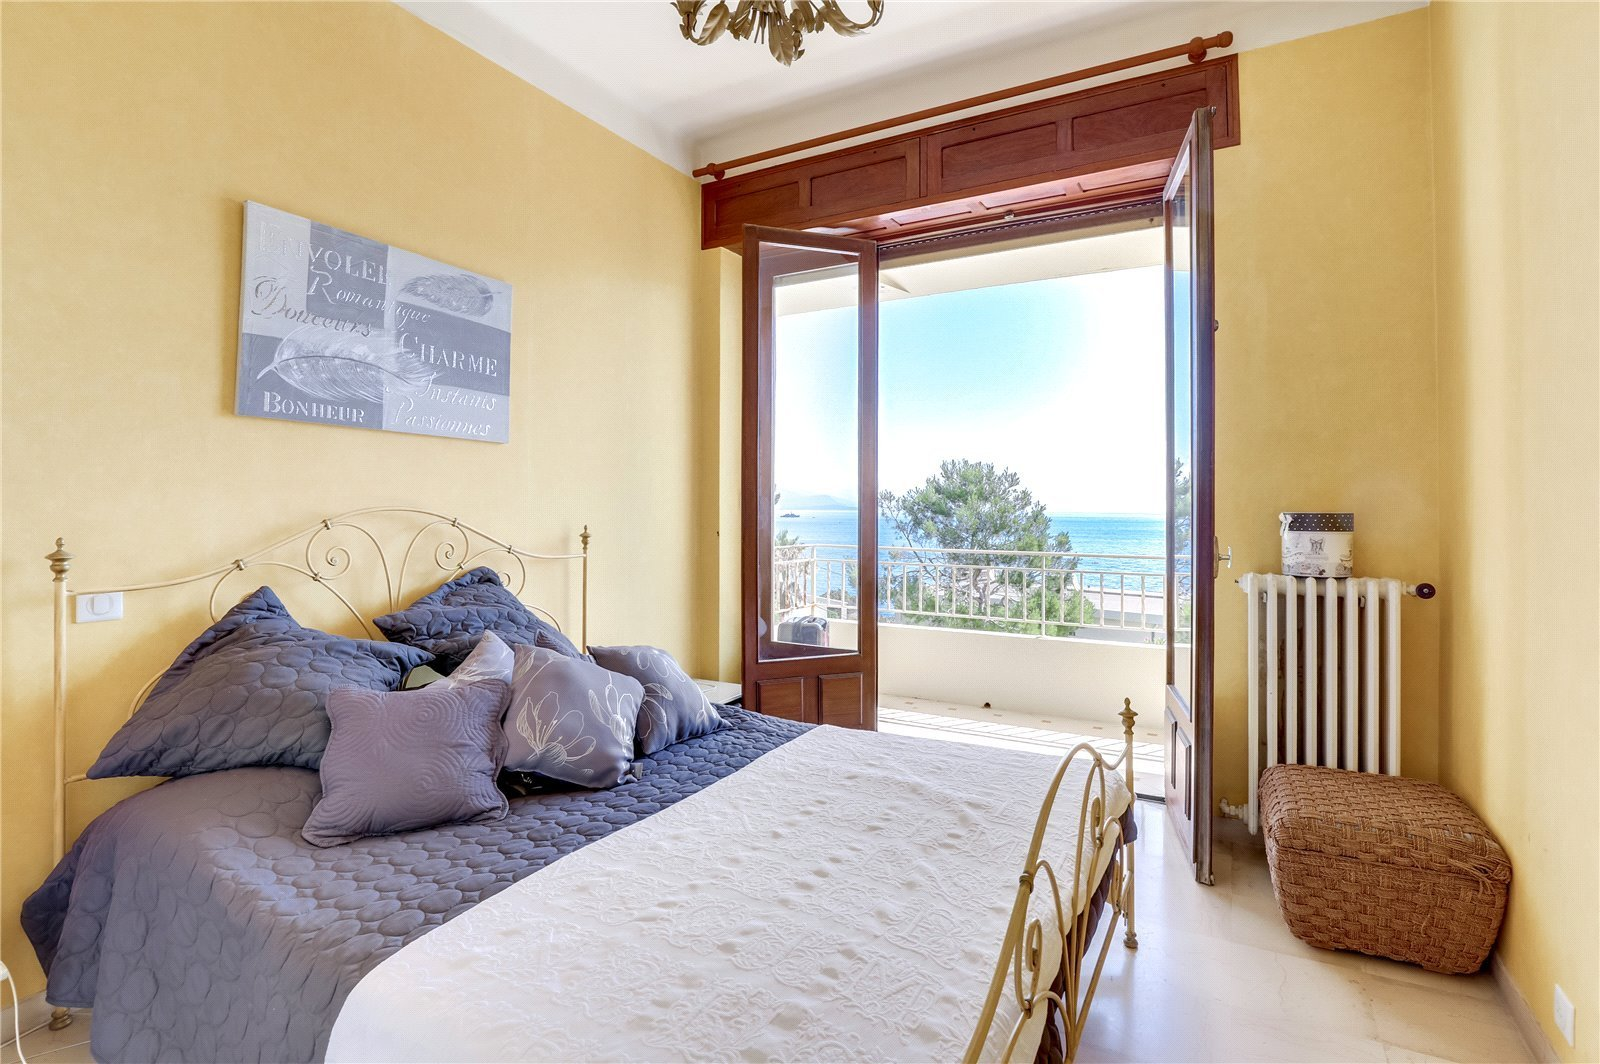 Buying Villa Cap d'Antibes Beautiful 5 bedroom villa, boasting panoramic sea views, set in landscaped grounds with pool and spacious garage.